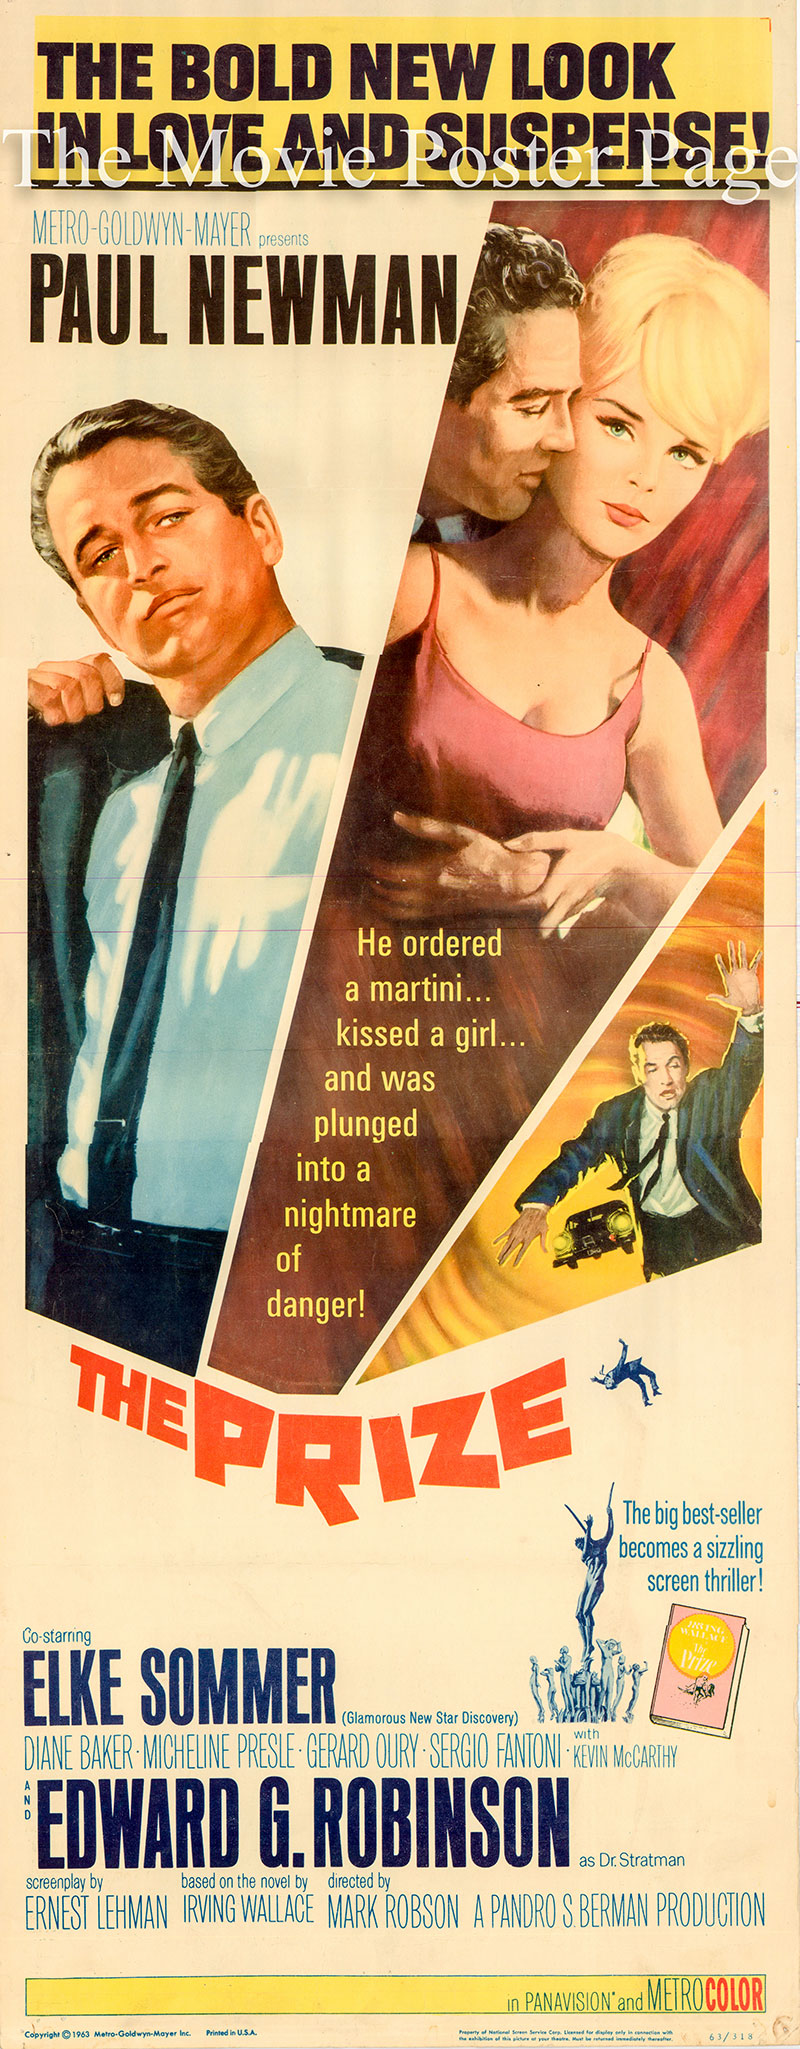 Pictured is a US insert poster for the 1963 Mark Robson film The Prize starring Paul Newman.